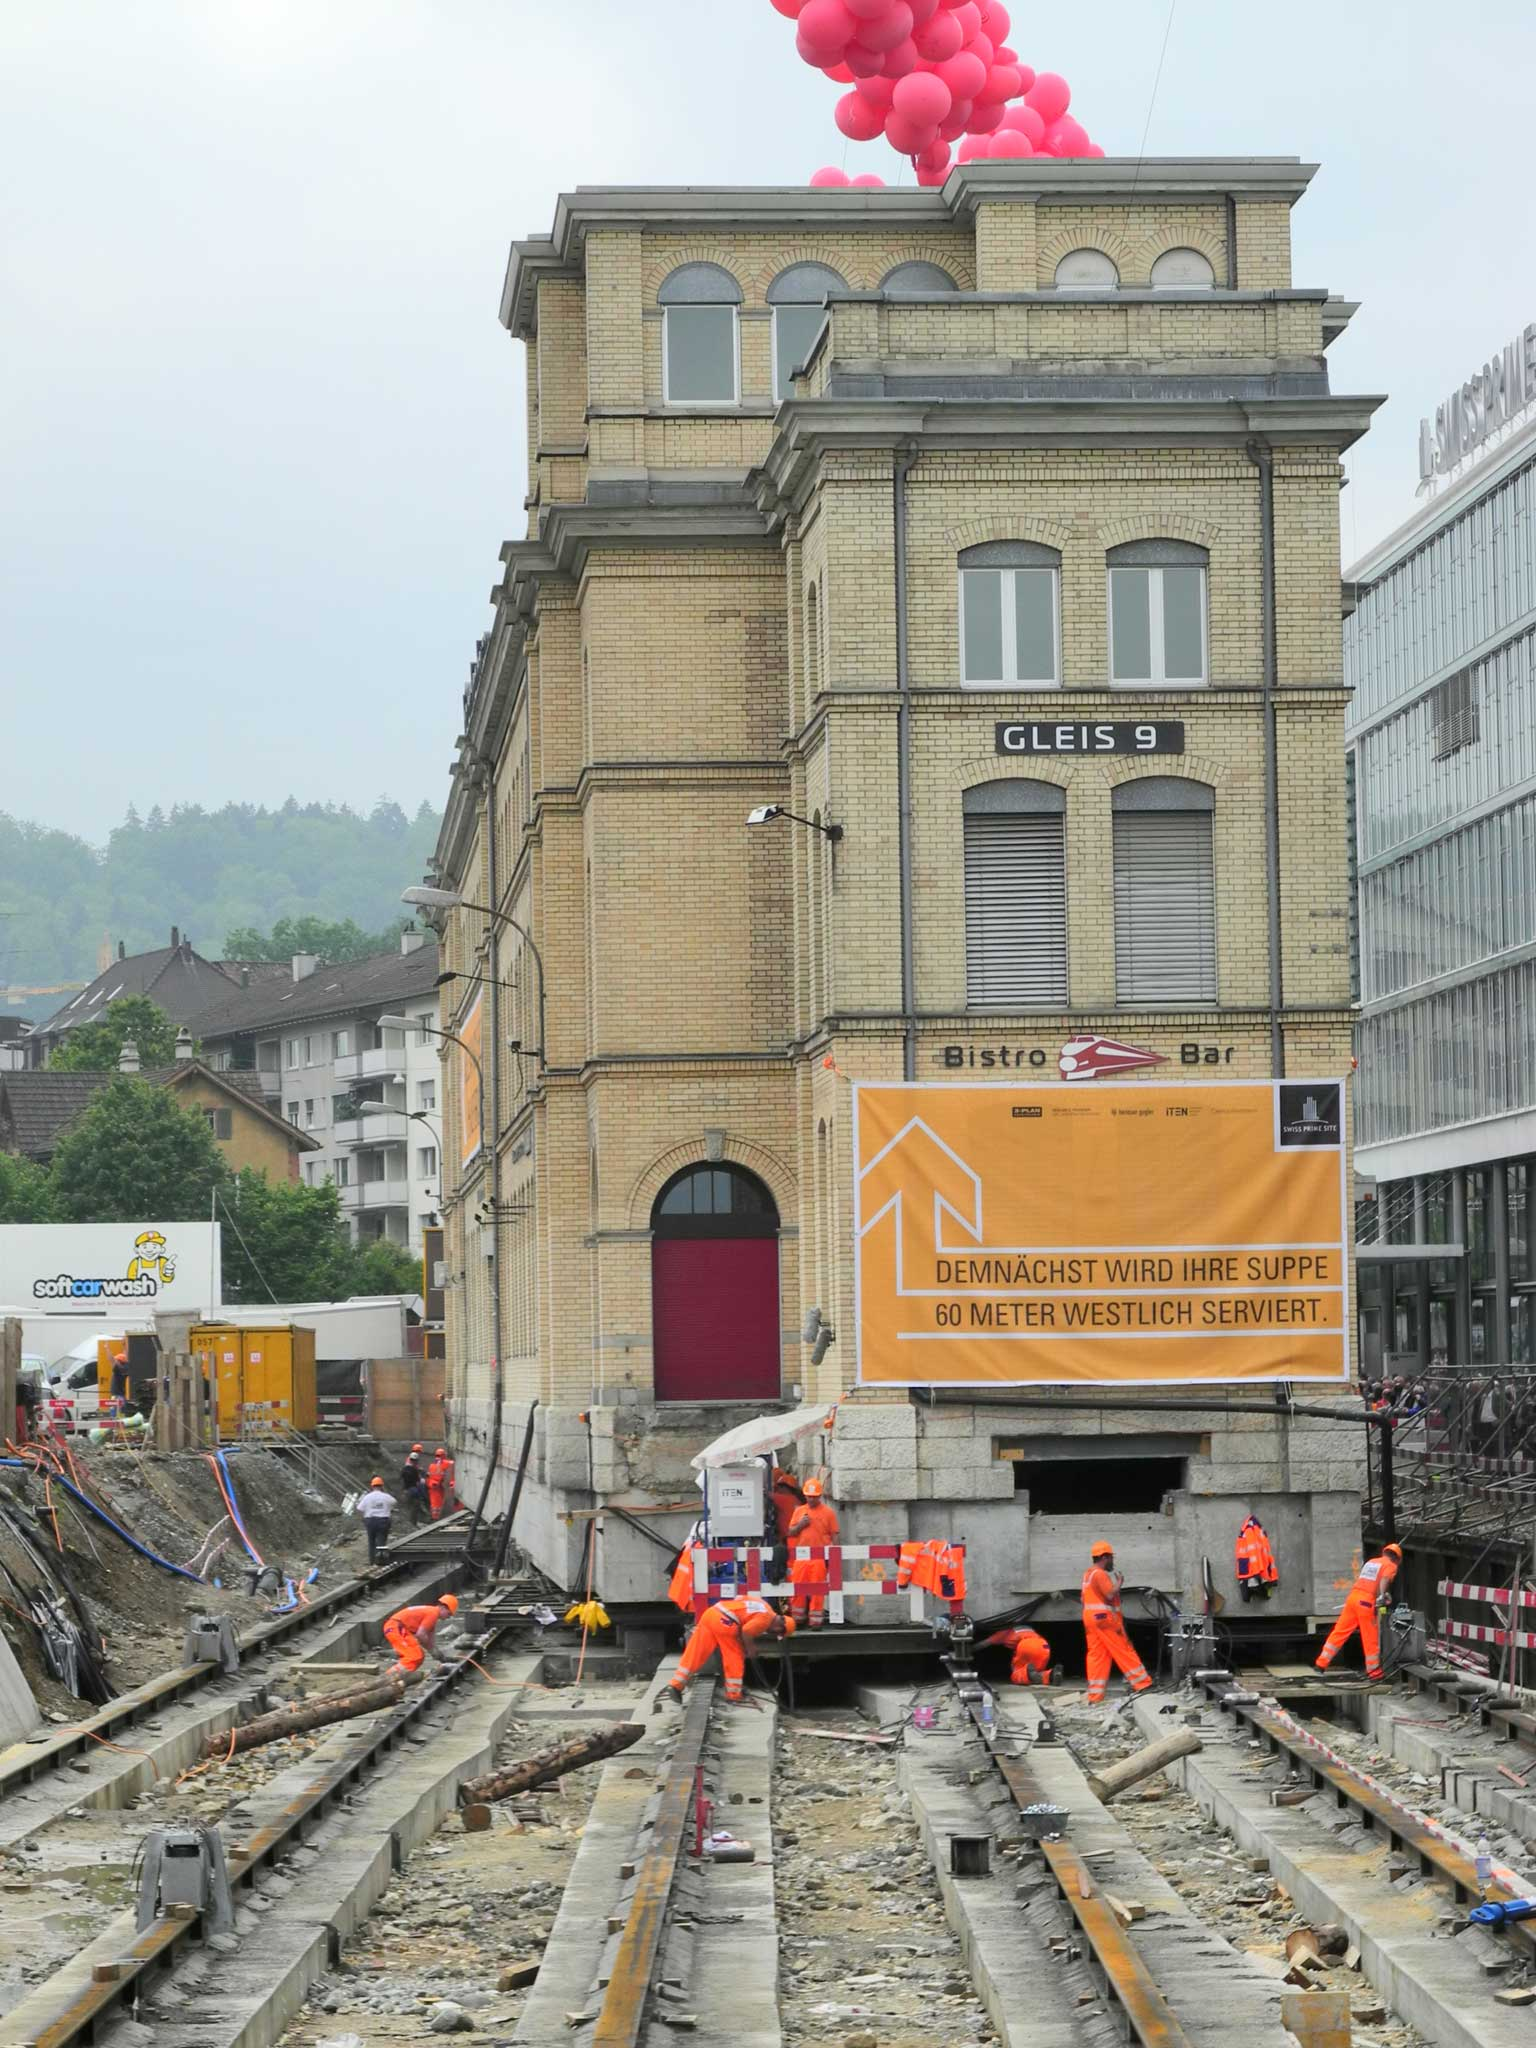 Gleis 9 in Zürich-Oerlikon (Switzerland) at the Oerlikon railway station moving to its new location